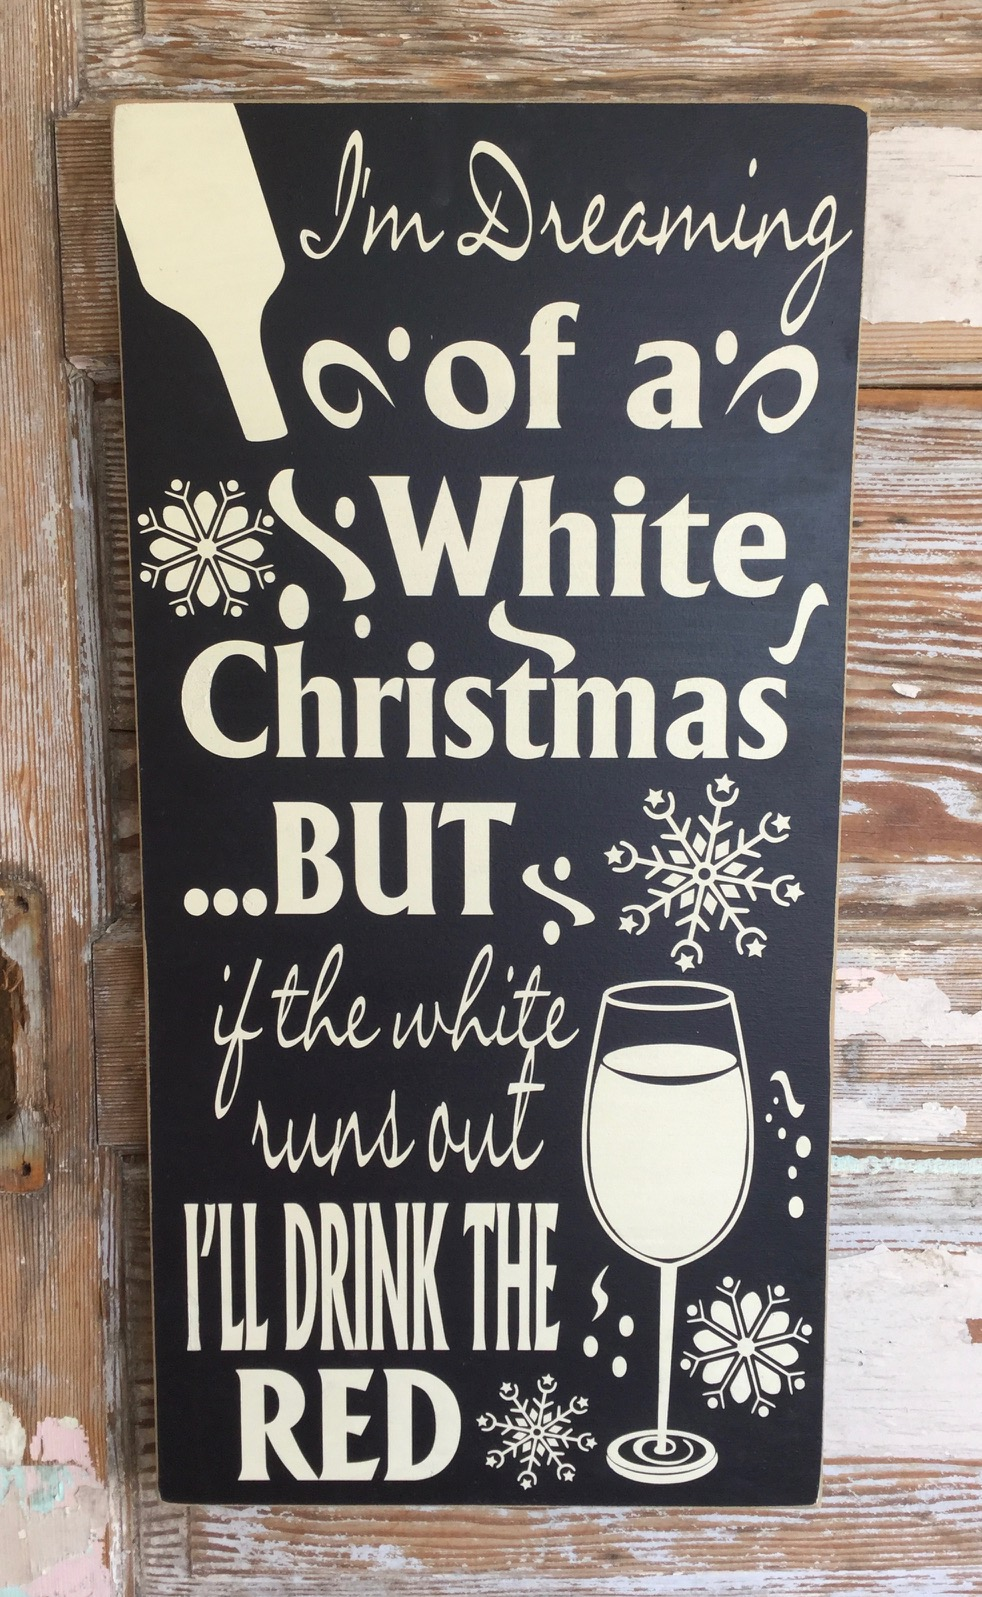 I'm Dreaming of a White Christmas...But If The White Runs Out, I'll Drink The Red.  Wood Sign